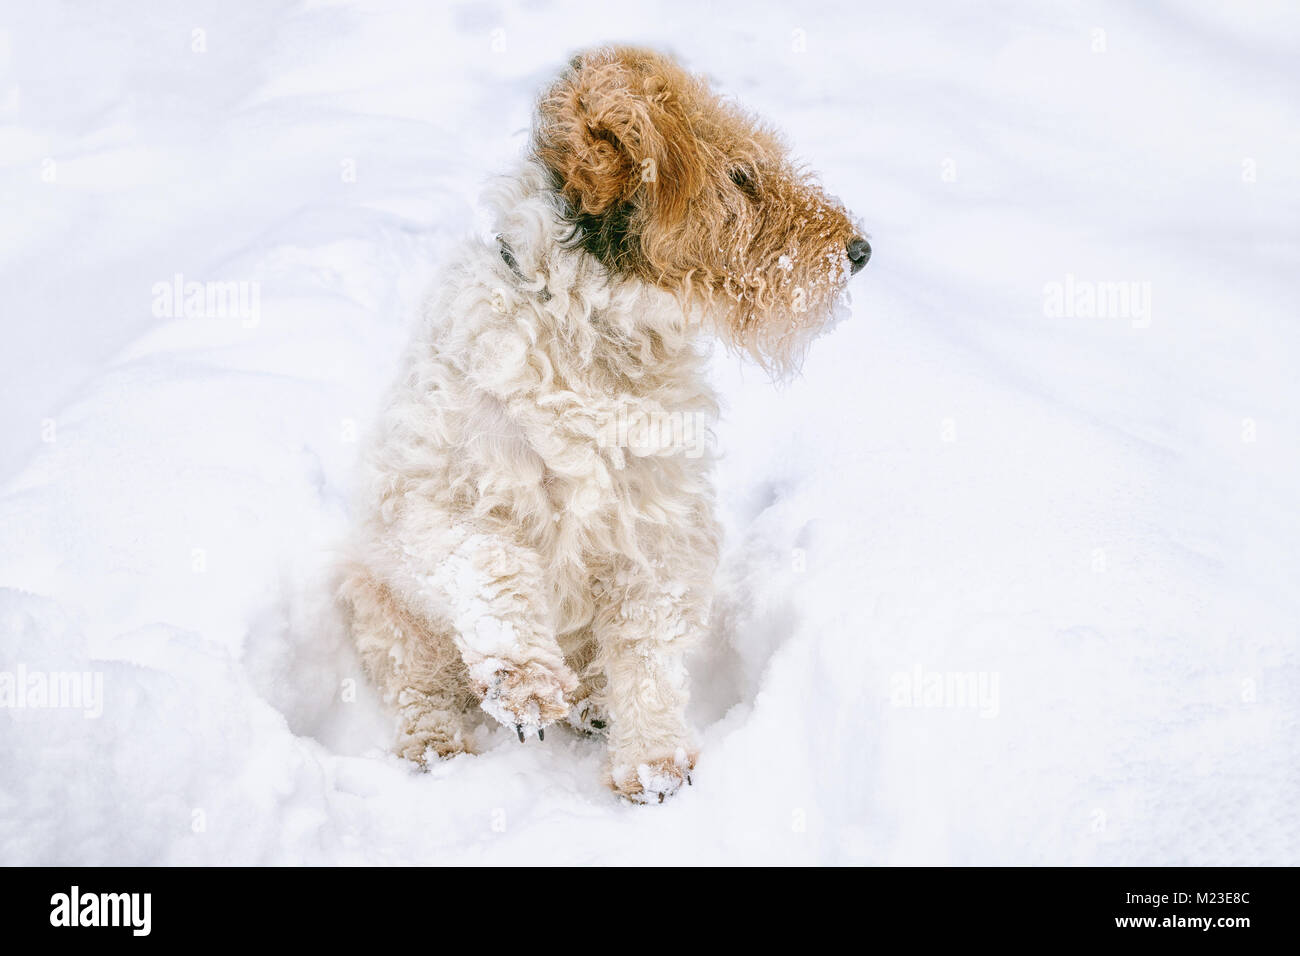 Sad dog sneaks in a snow drift in search of the road. Anomalous snowfall in the winter. Copy space. - Stock Image